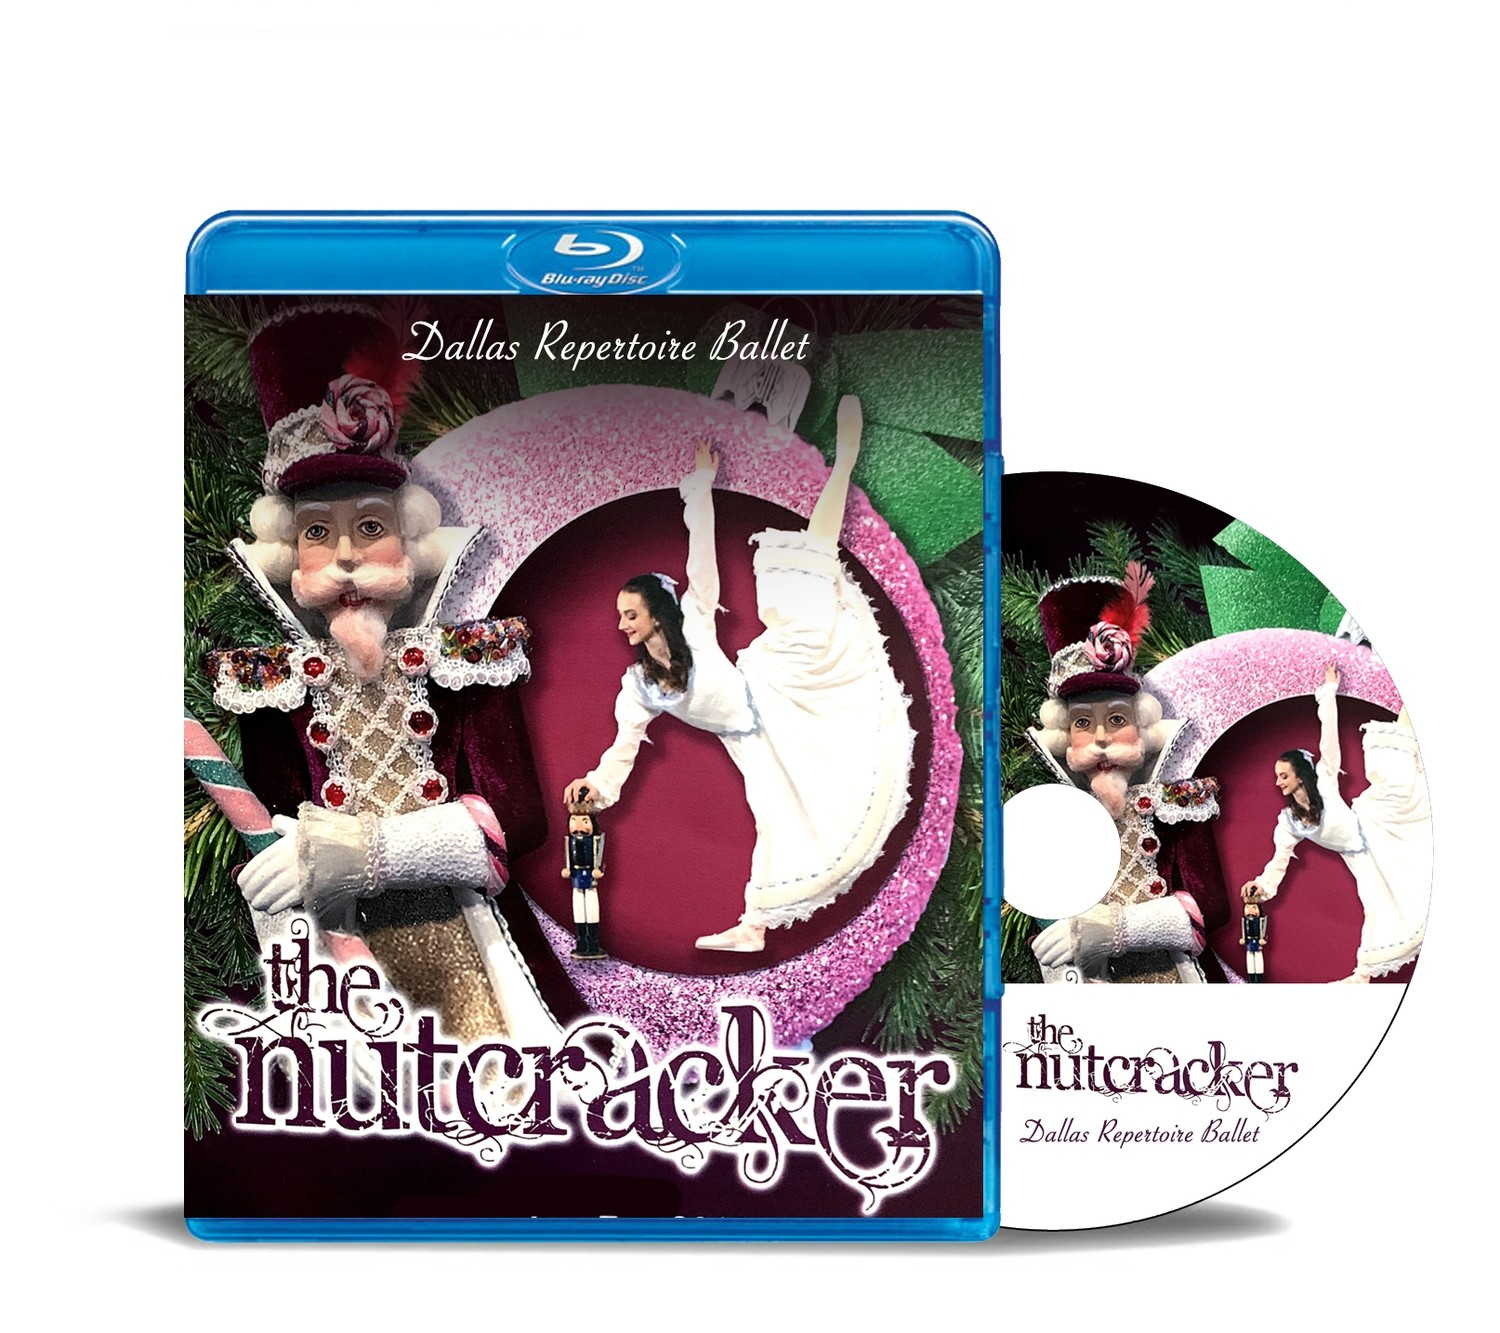 The Nutcracker 2018 Blu-ray